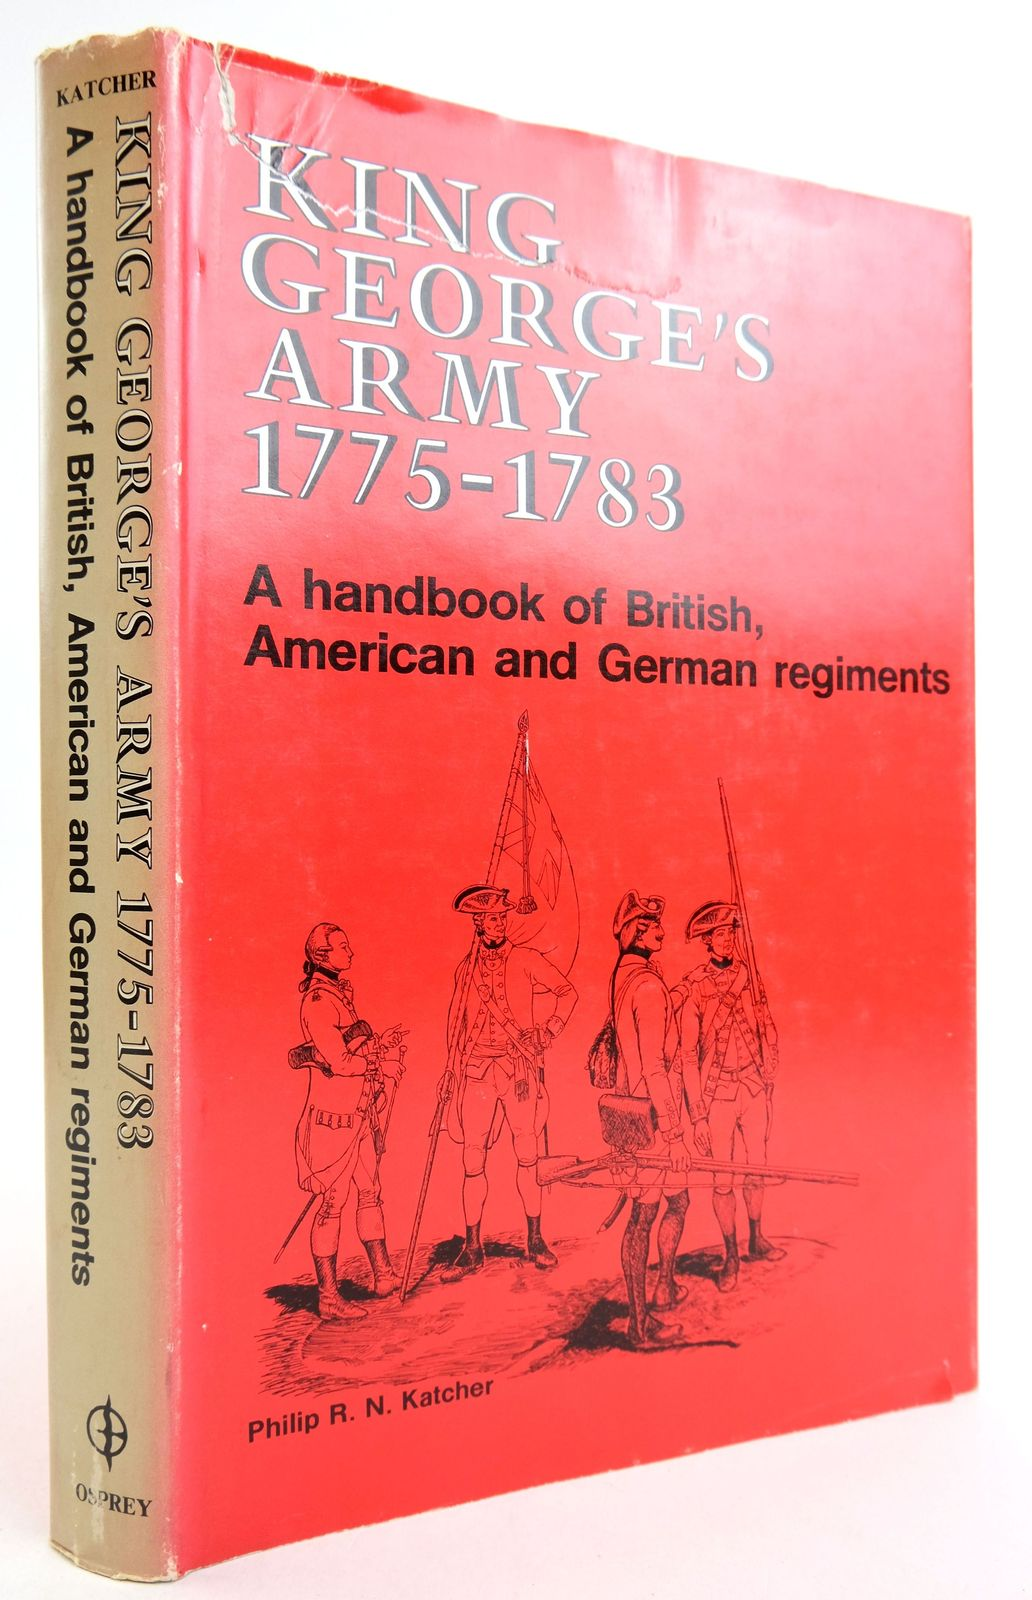 Photo of KING GEORGE'S ARMY 1775-1783 written by Katcher, Philip R. N. published by Osprey Publishing (STOCK CODE: 1819850)  for sale by Stella & Rose's Books